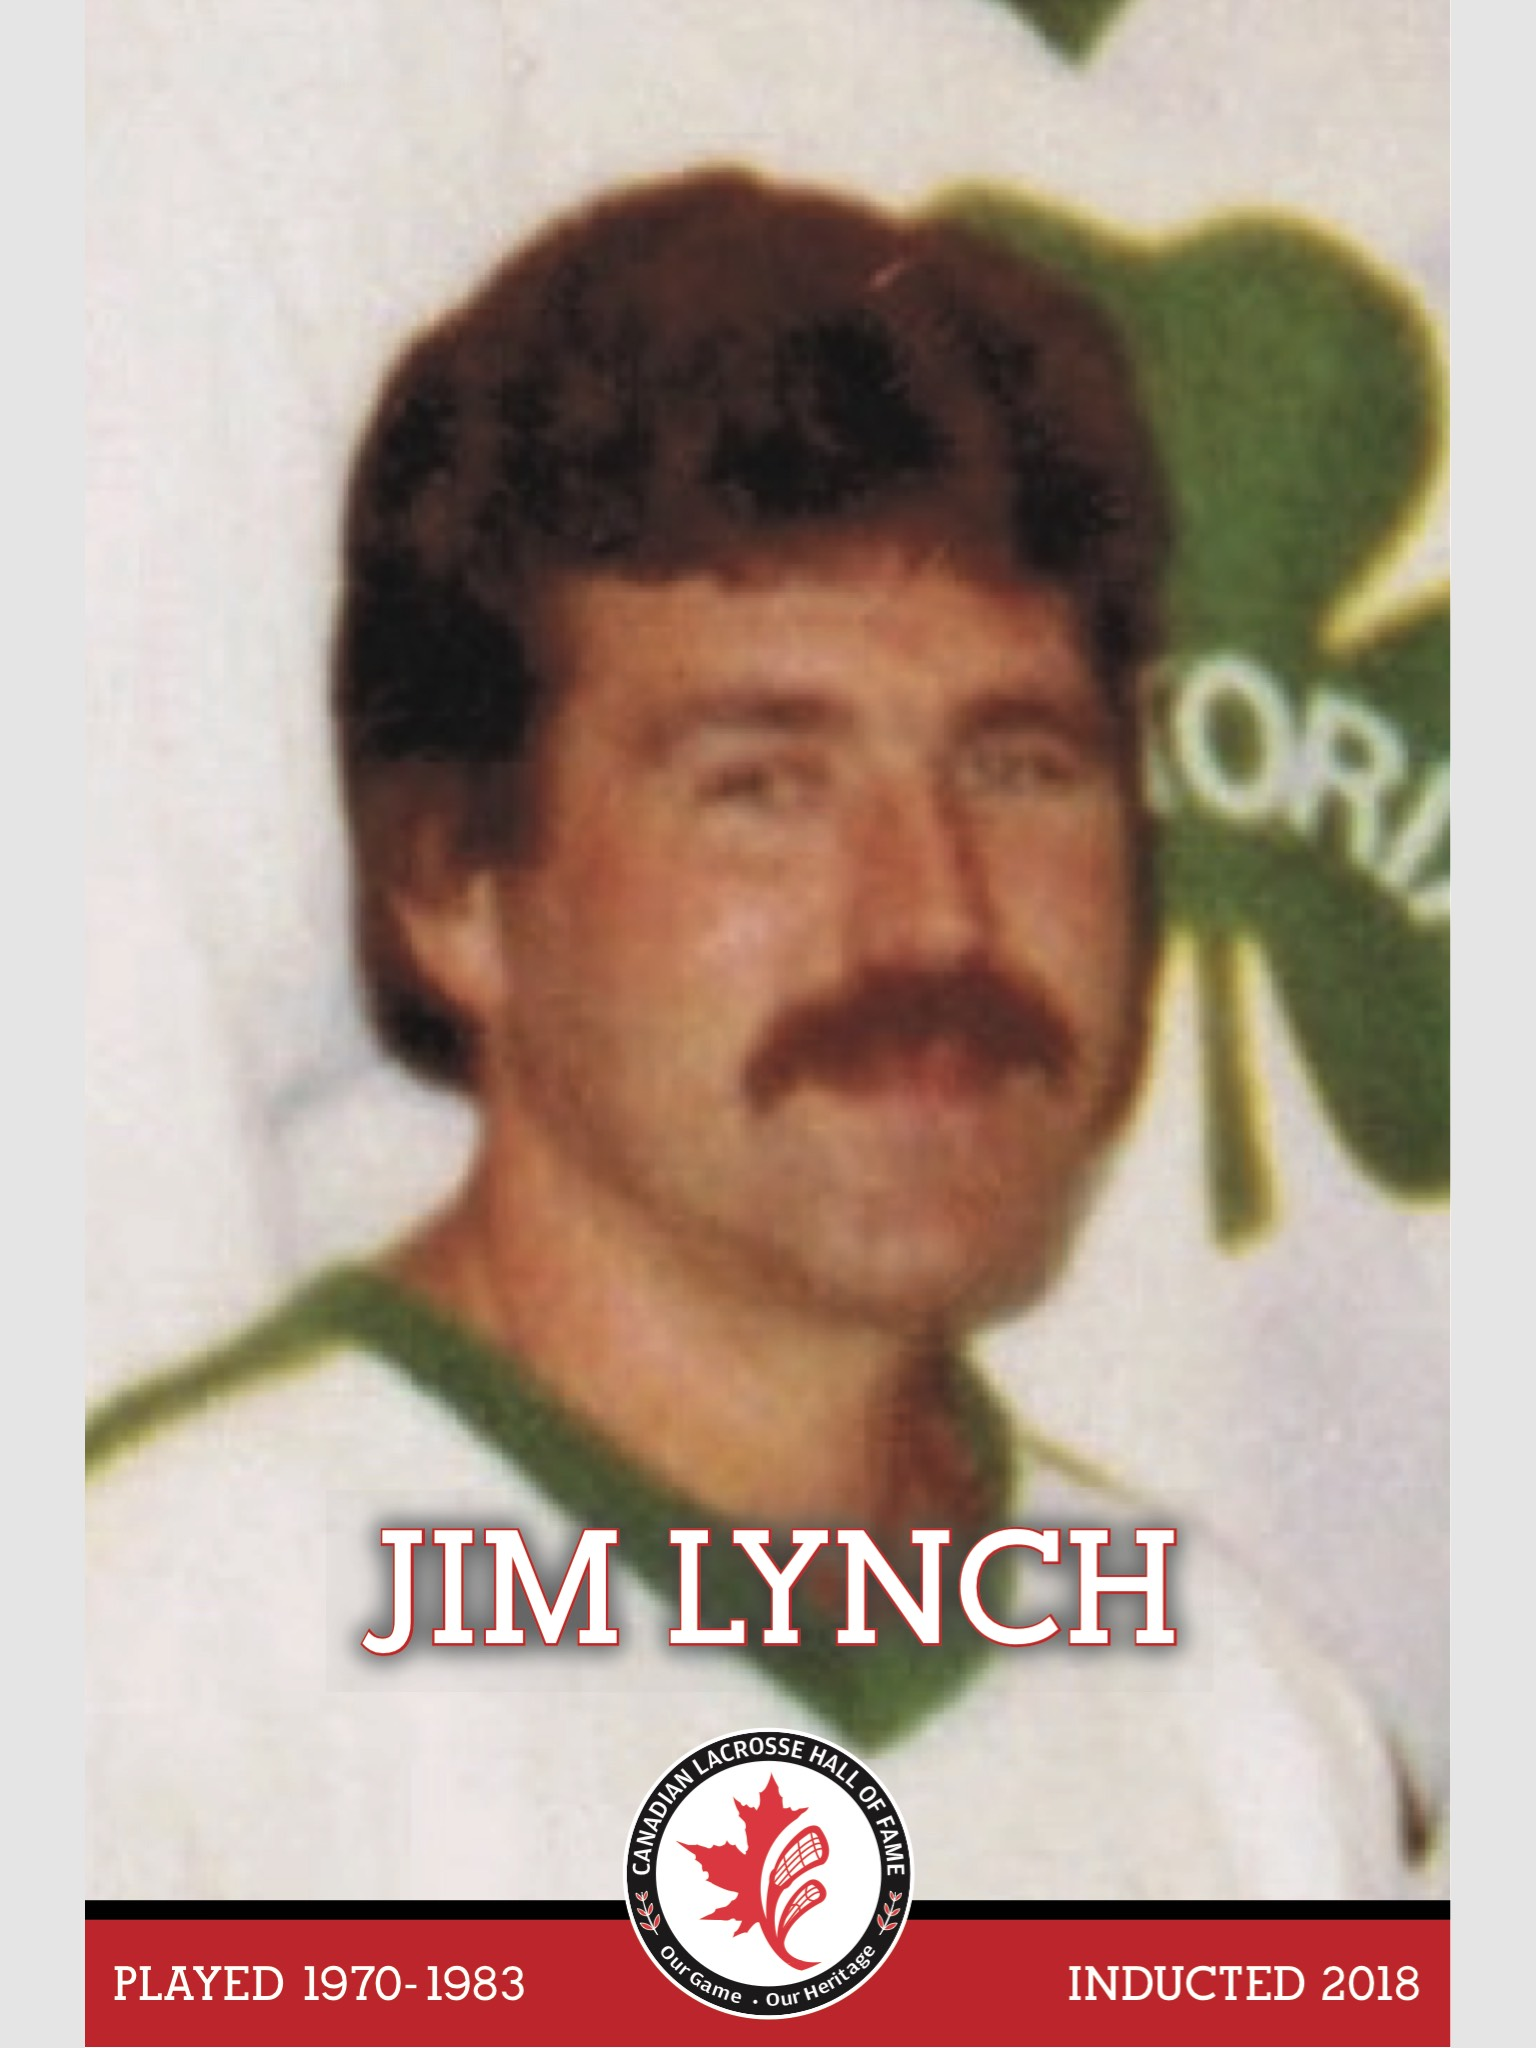 Jim Lynch